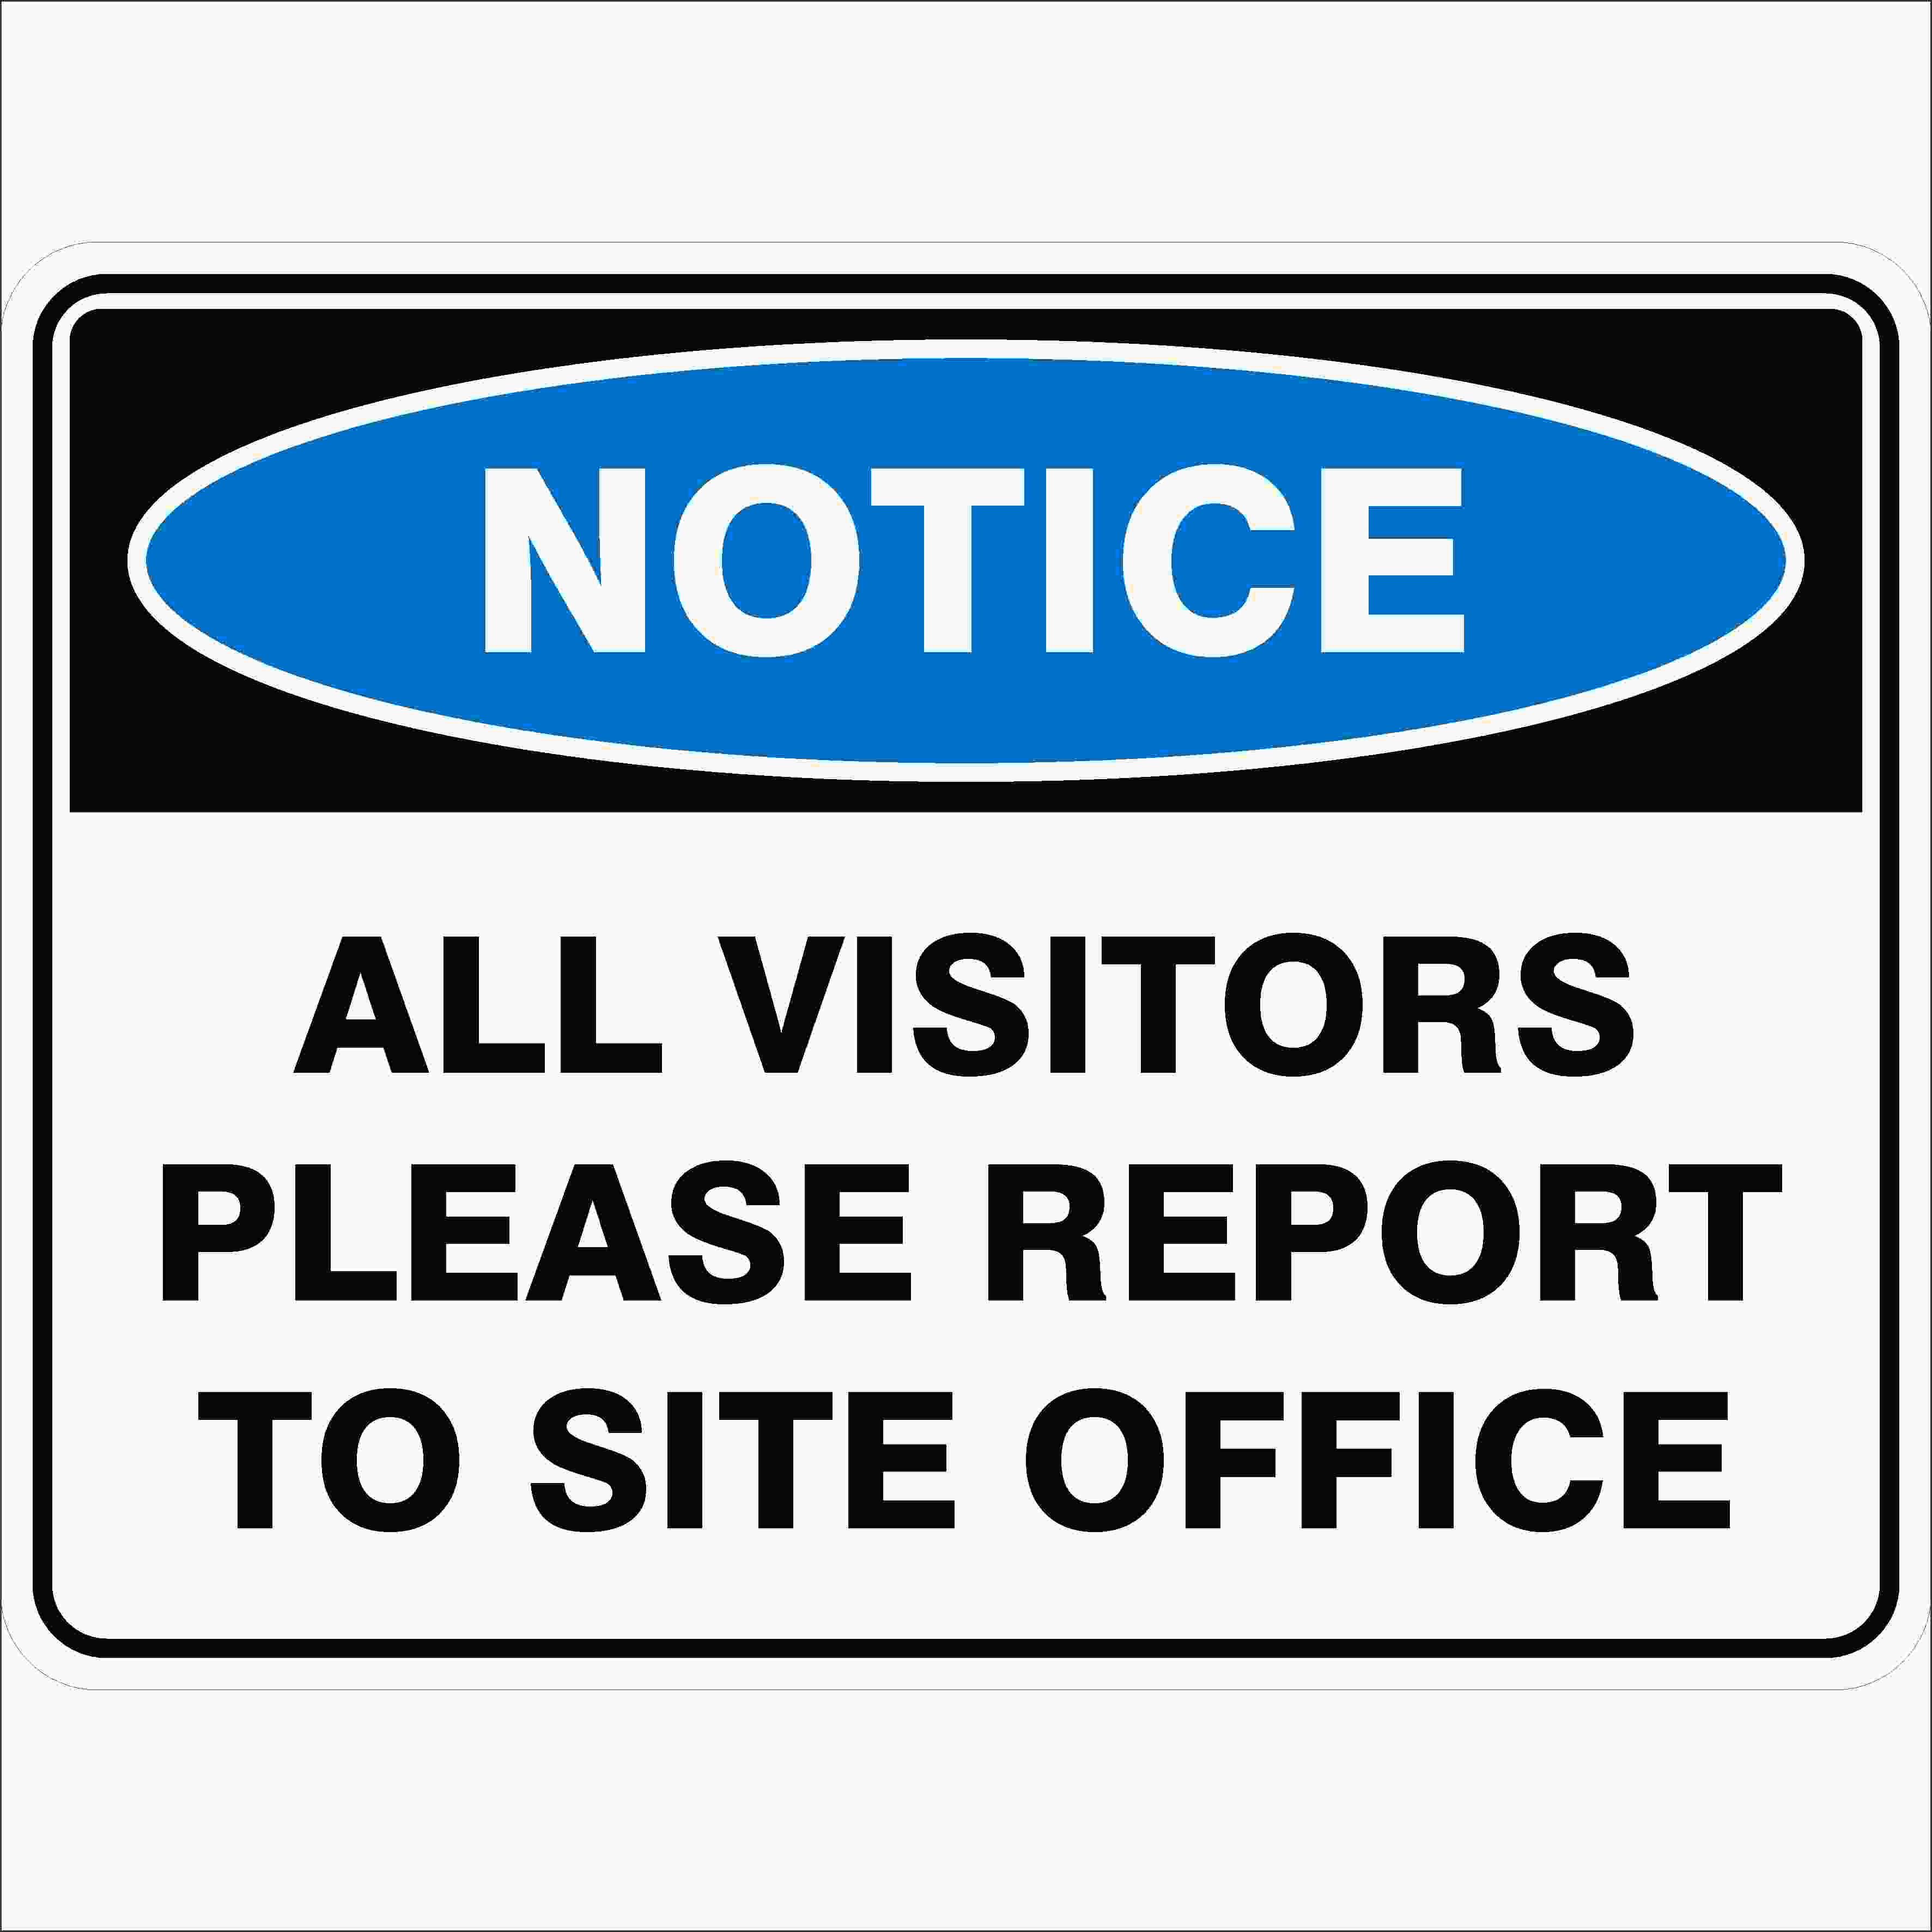 Construction Site Signs ALL VISITORS PLEASE REPORT TO SITE OFFICE